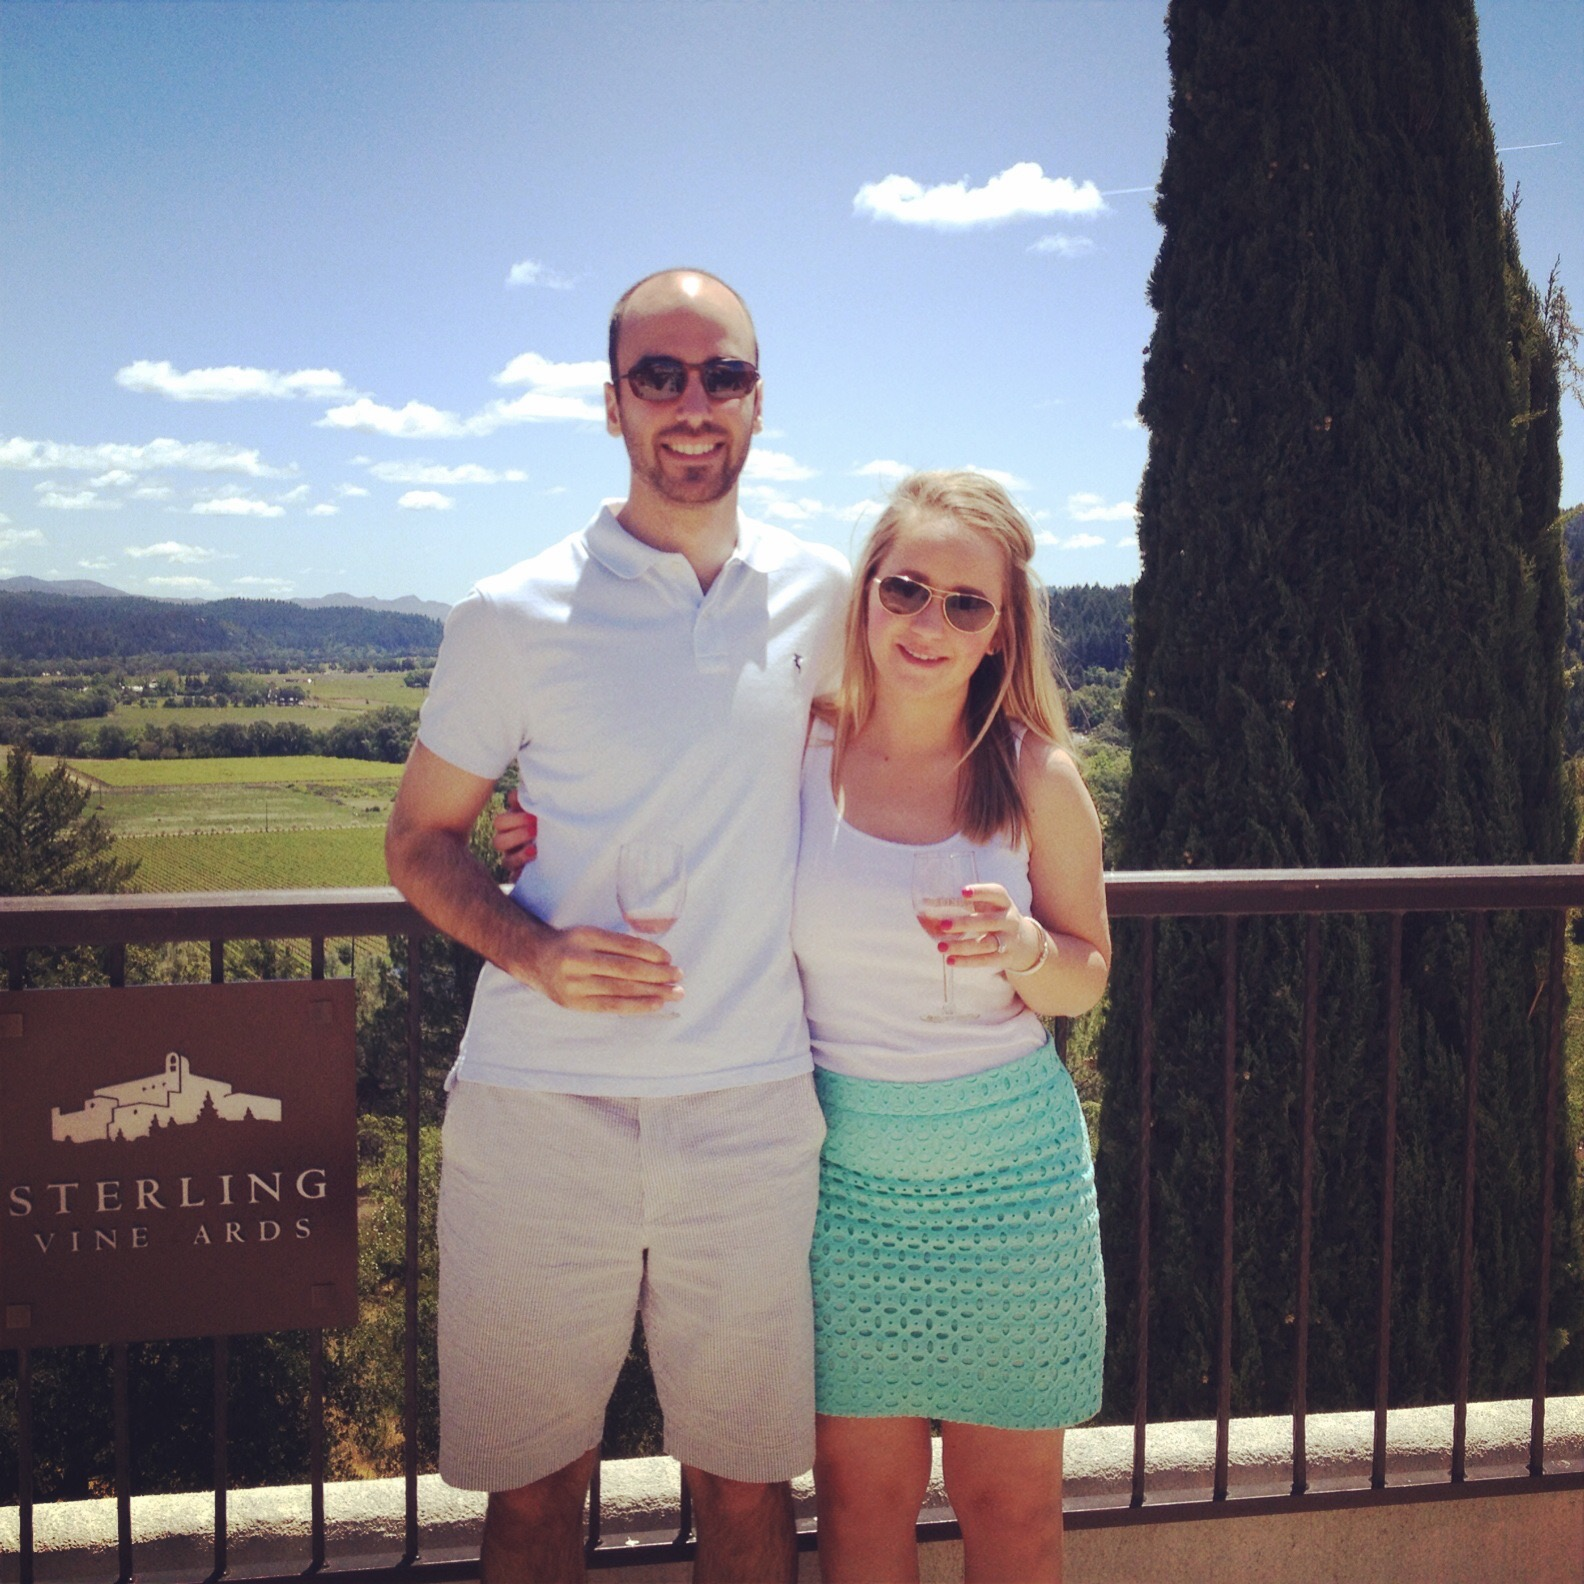 Napa Guide for Beginners #Napa #NapaGuide #NapaTrip #Wineries